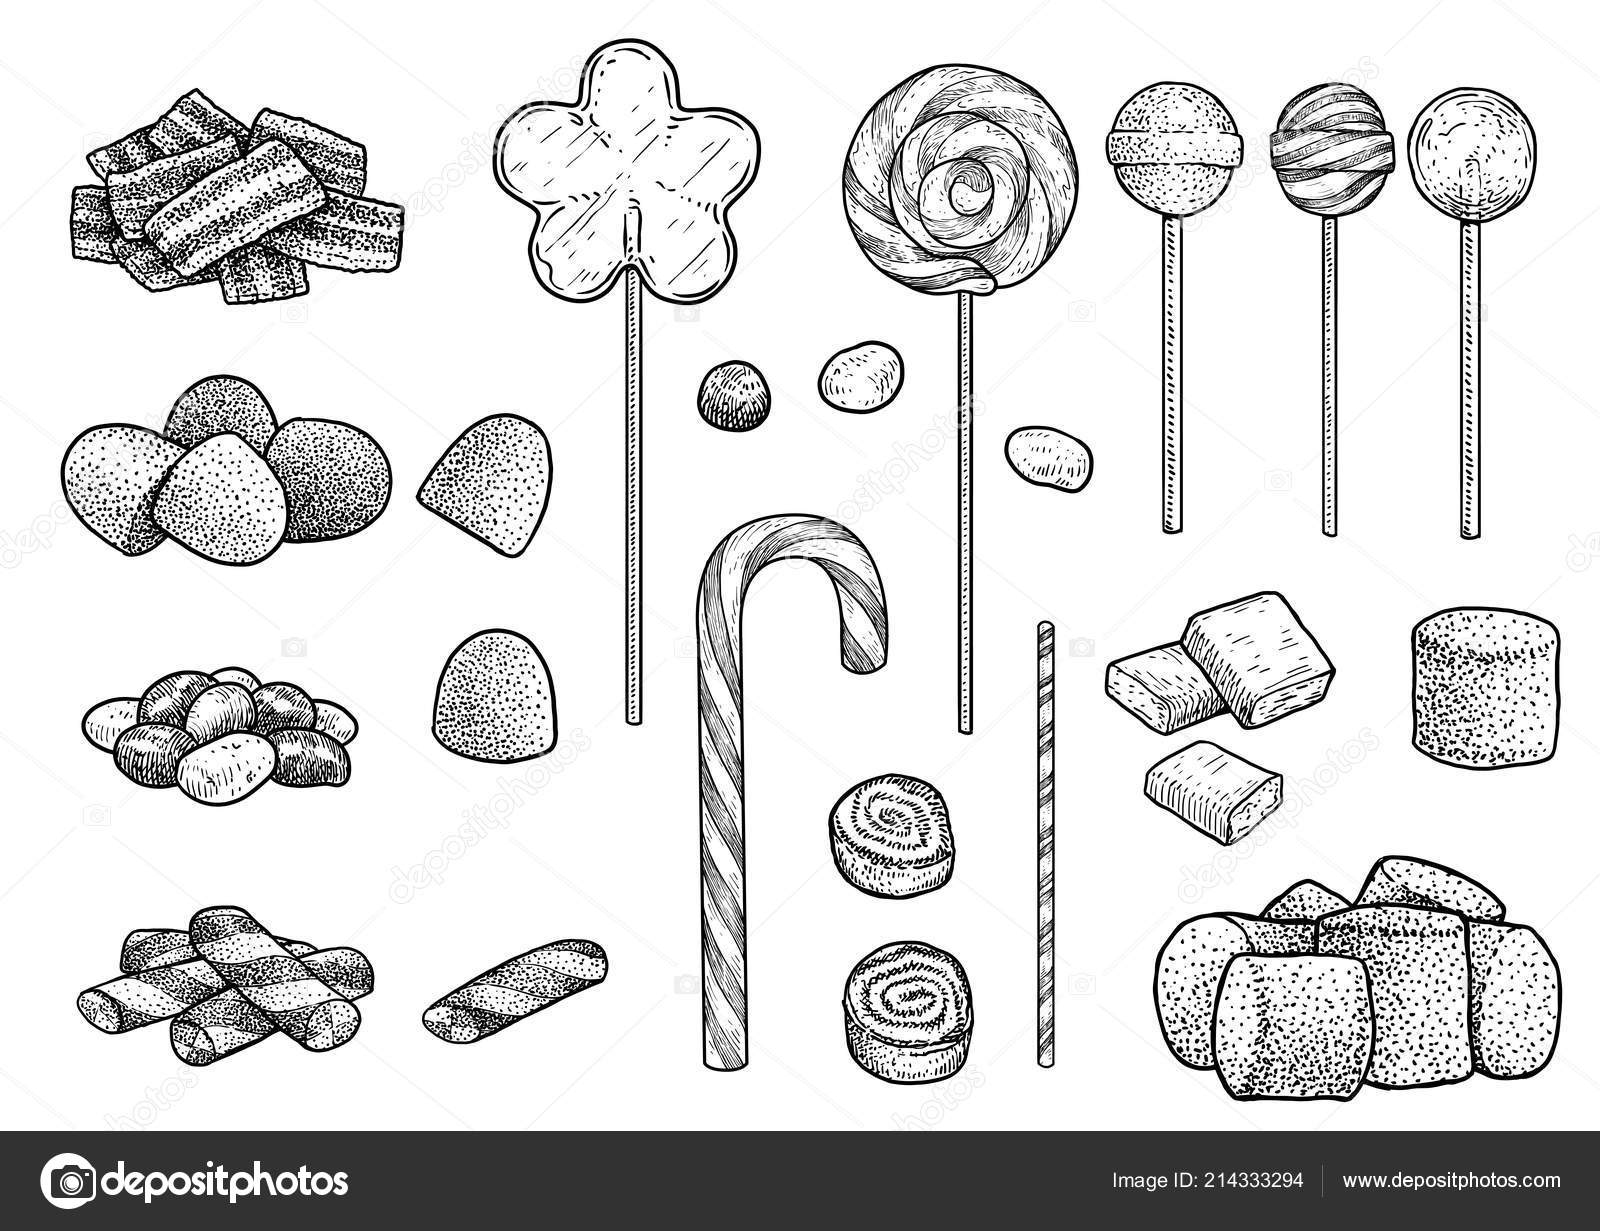 candy collection illustration drawing engraving ink line art vector